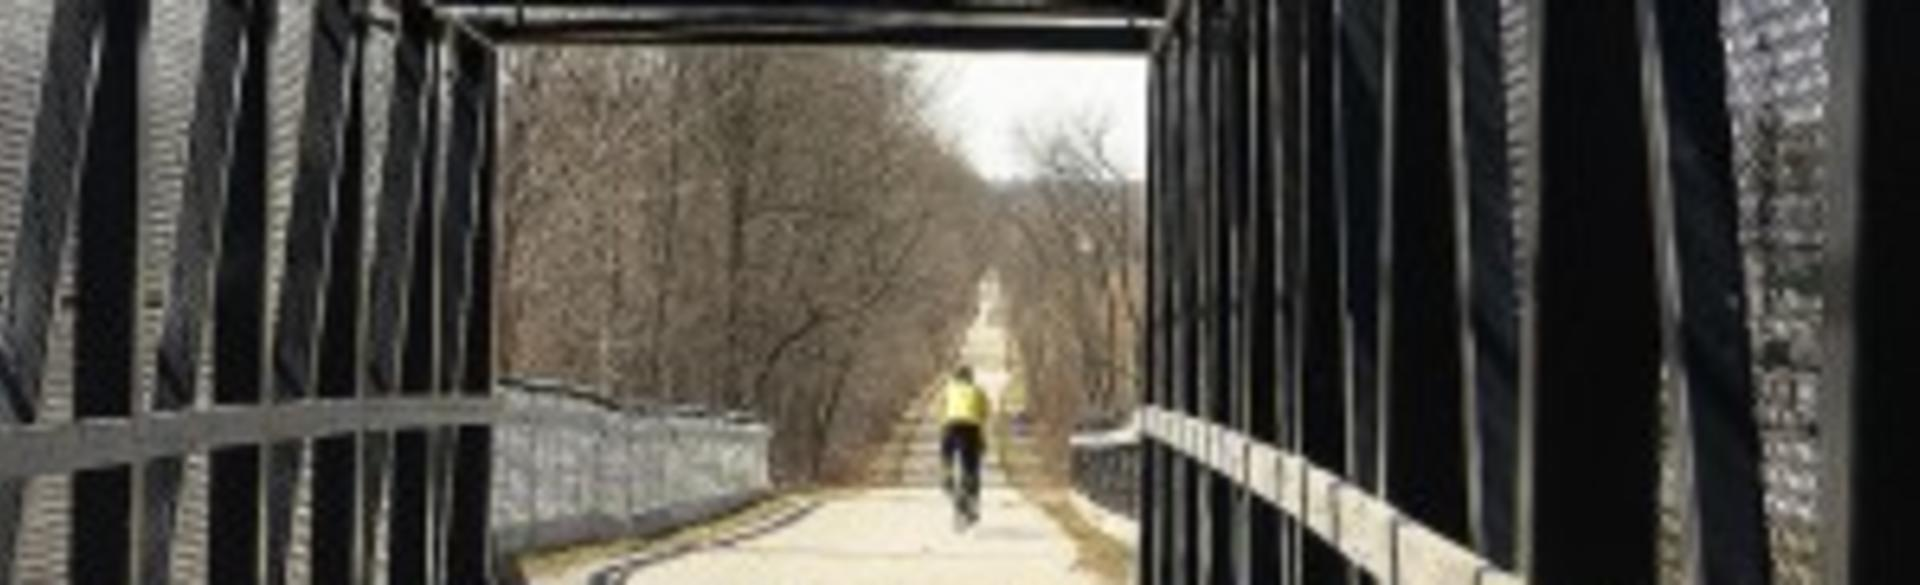 Bicyclist Crossing Bridge